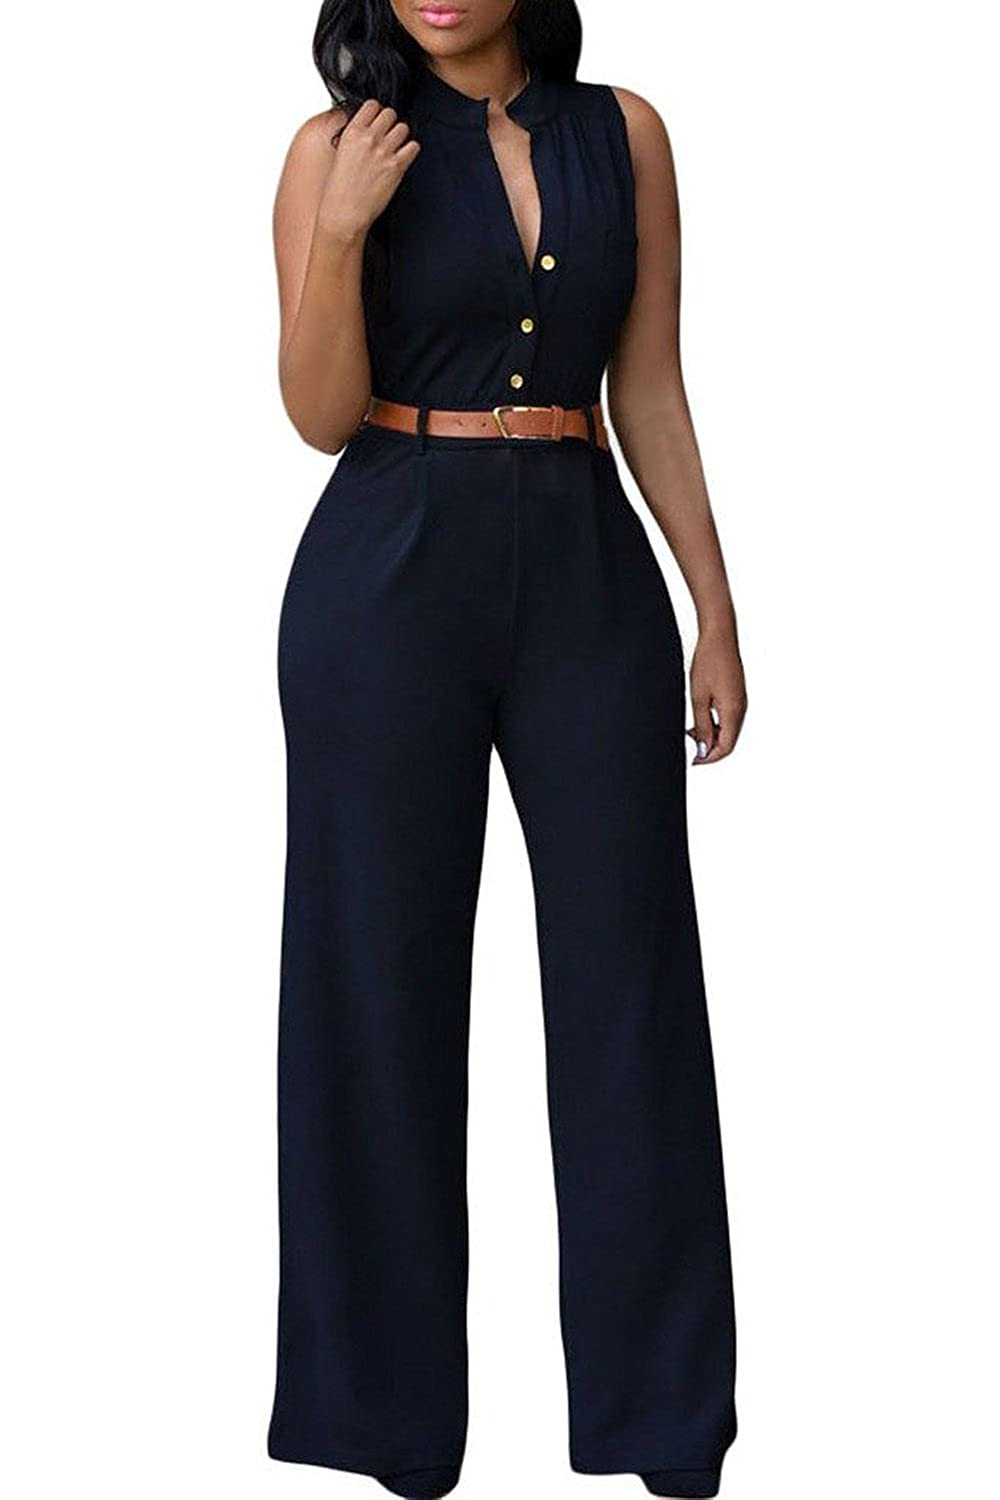 295eb4c3d7c Amazon.com  roswear Women s Sexy Plunge V Neck Belted Wide Leg Jumpsuits  Dress  Clothing